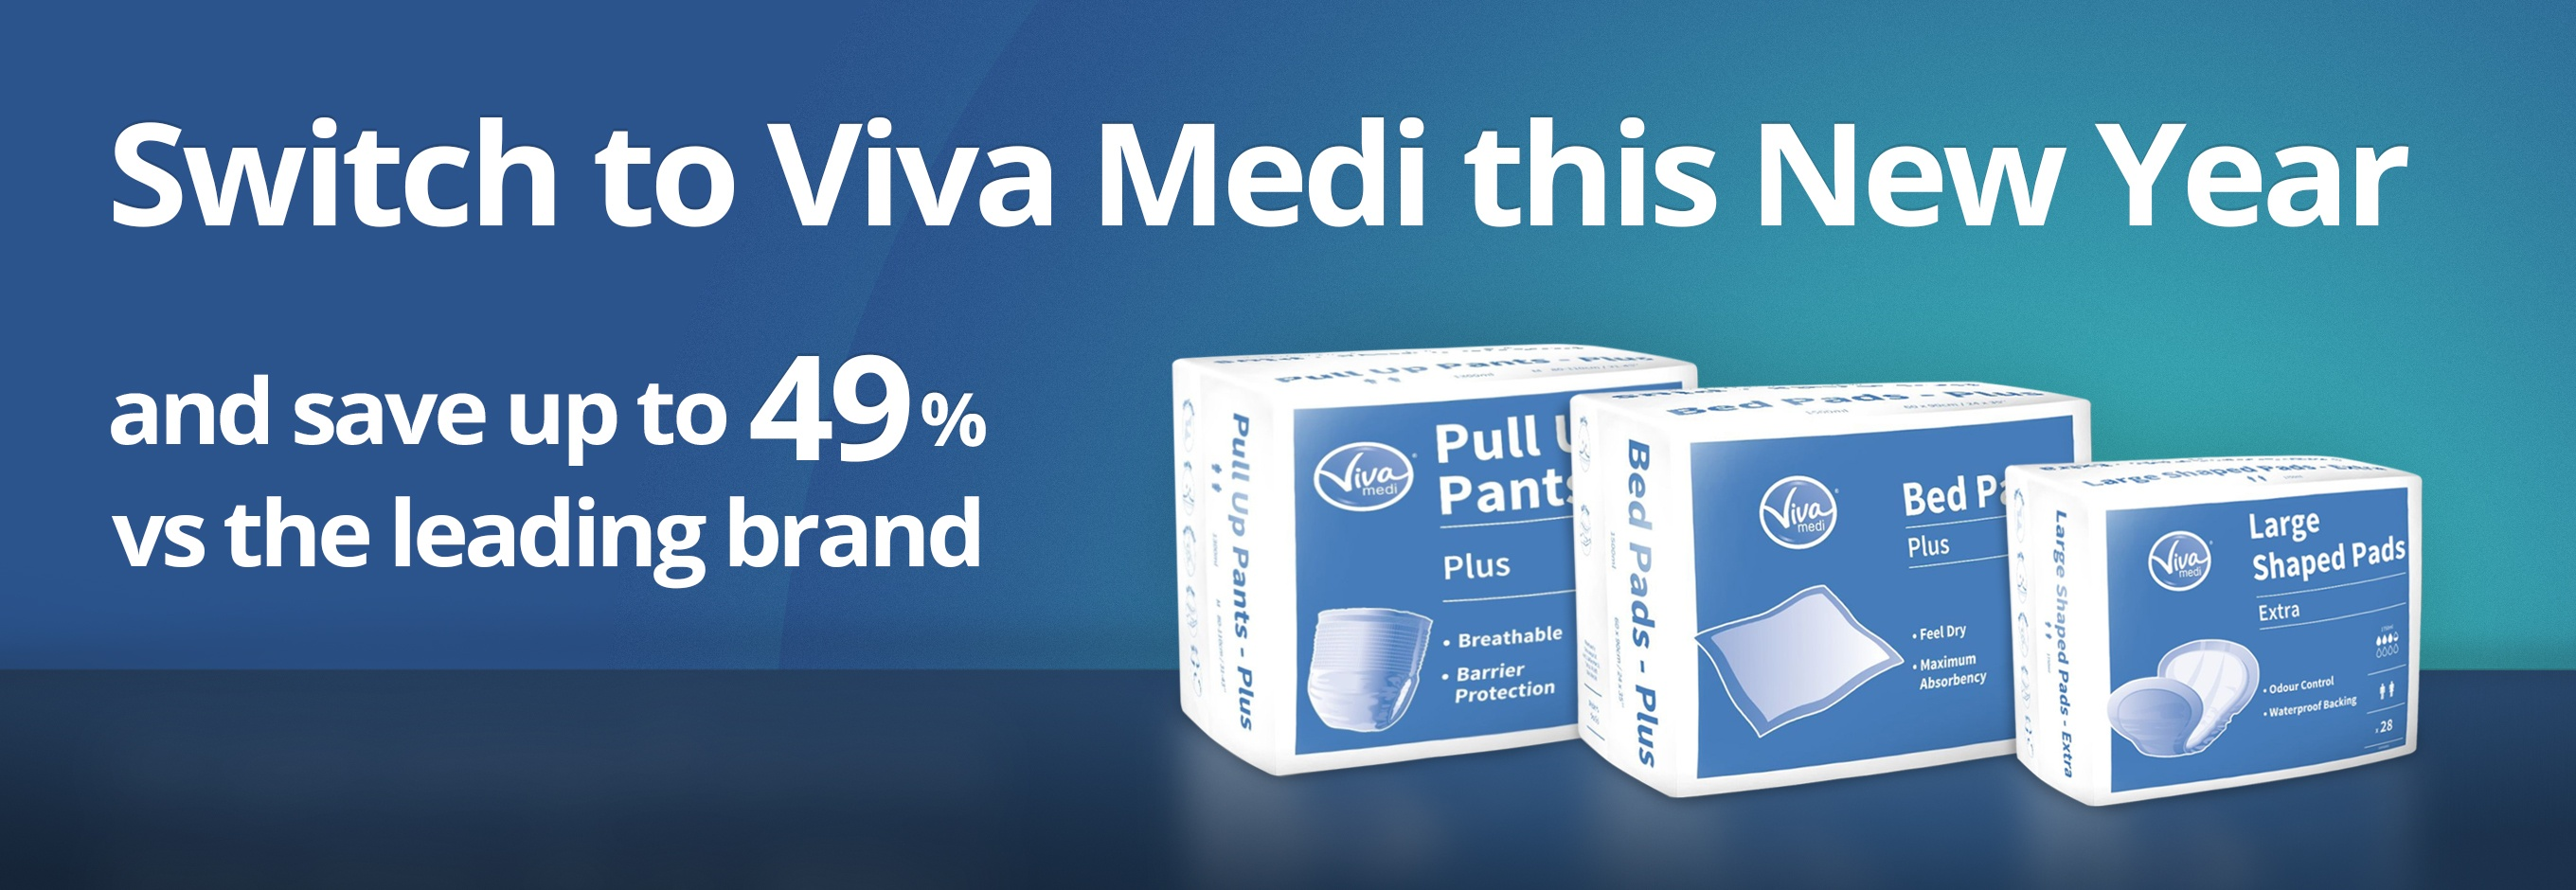 Switch to Viva Medi this New Year